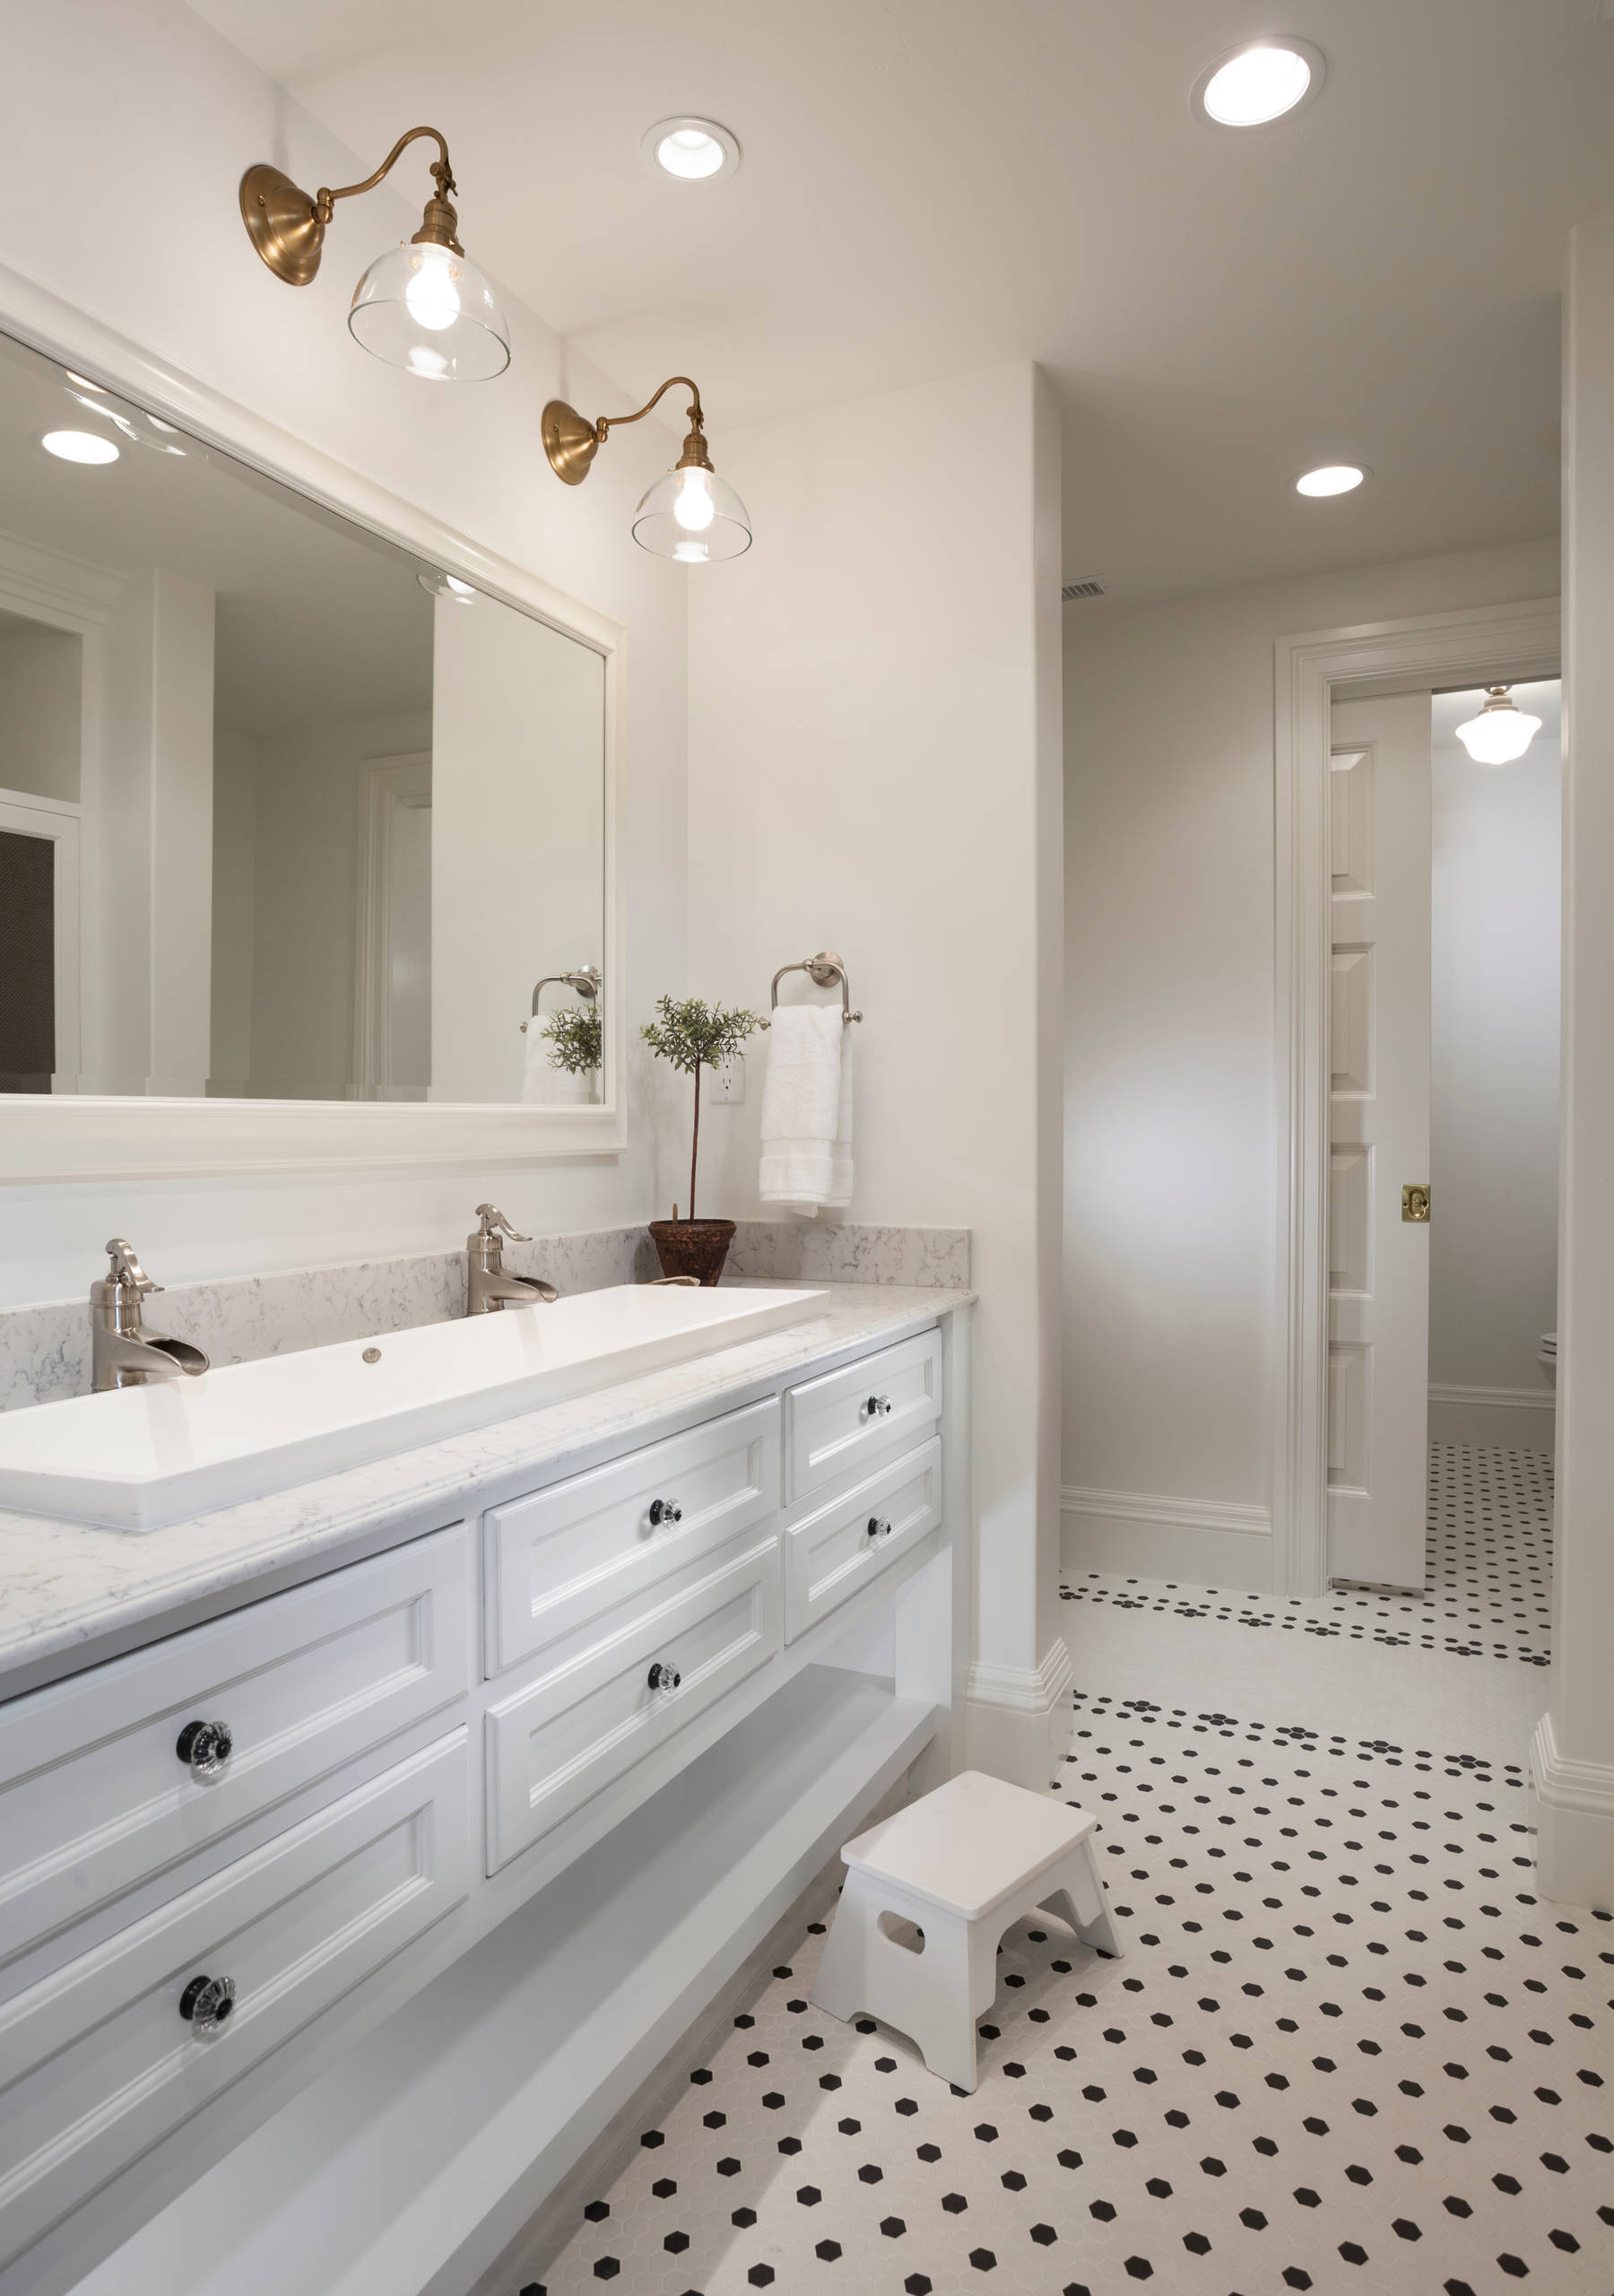 75 Beautiful Traditional Bathroom With A Trough Sink Pictures Ideas December 2020 Houzz